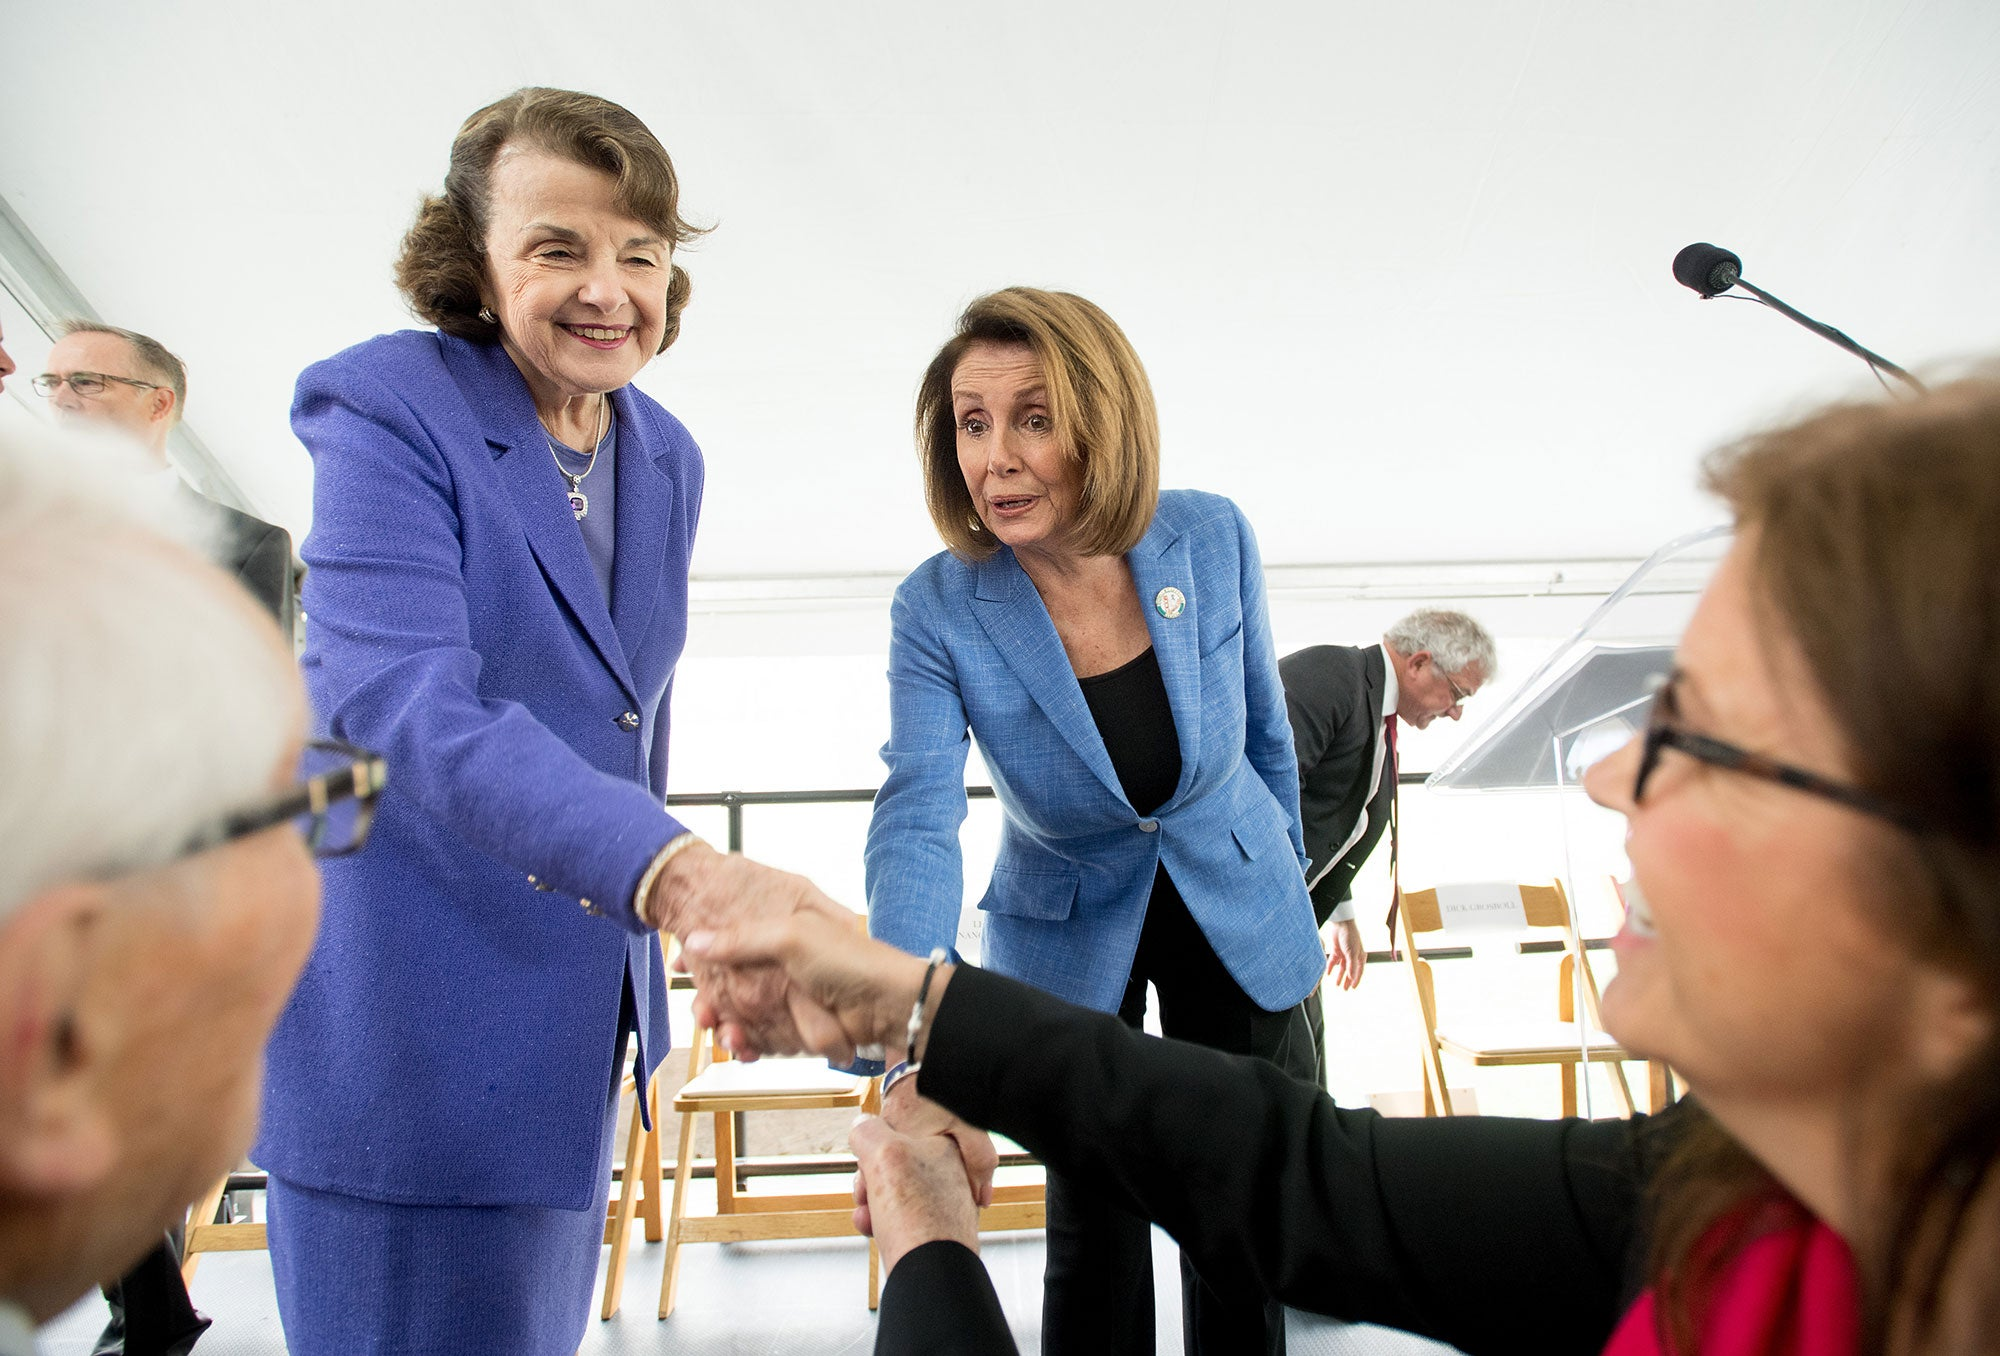 Dianne Feinstein and Nancy Pelosi greet the crowd.